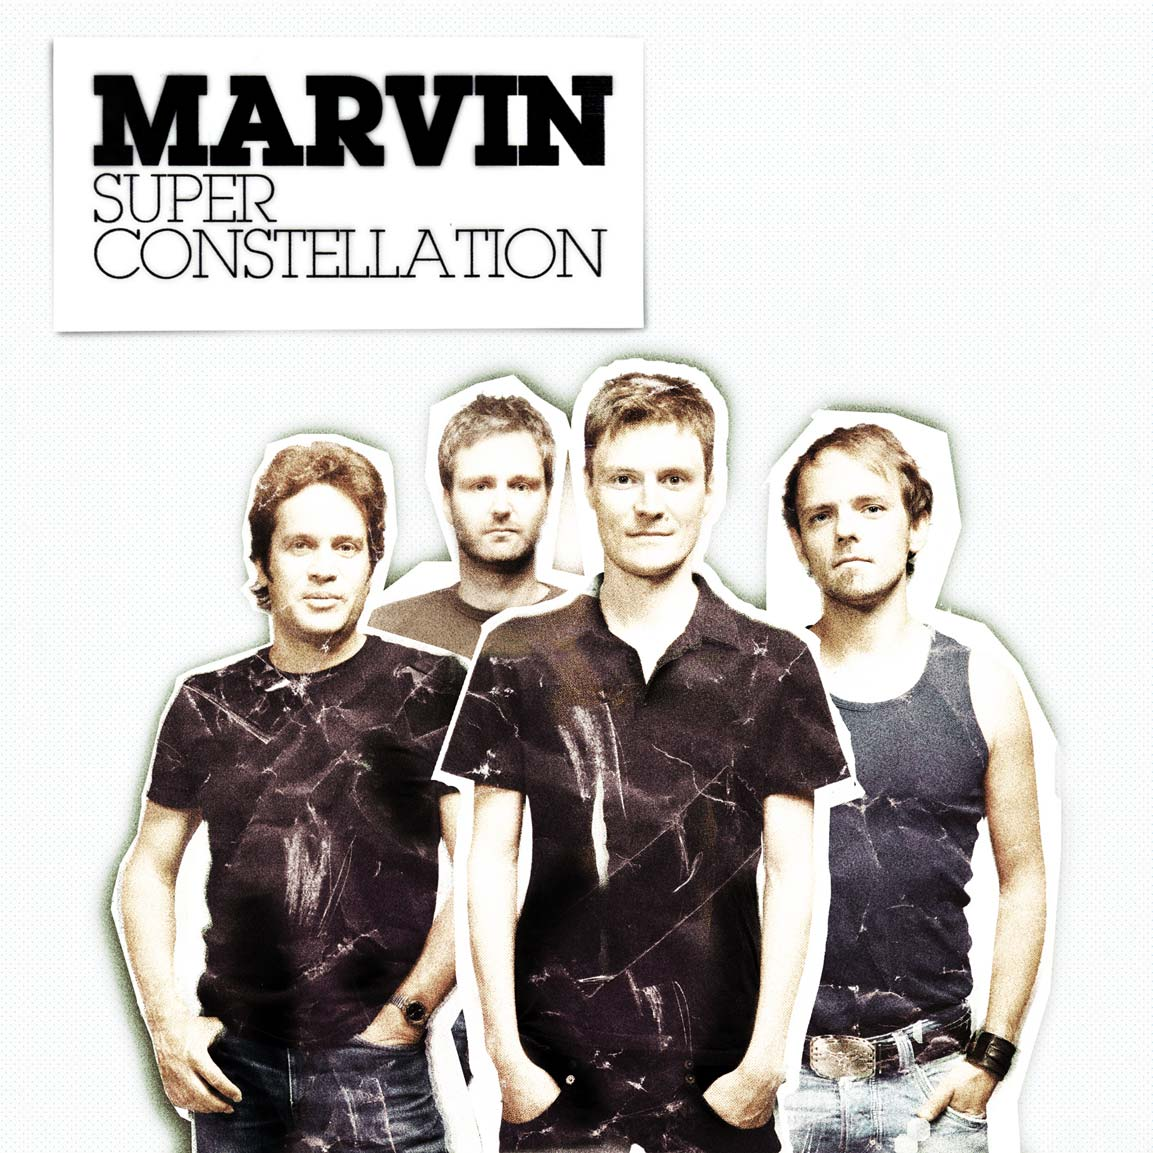 Marvin This Super Constellation LP Cover